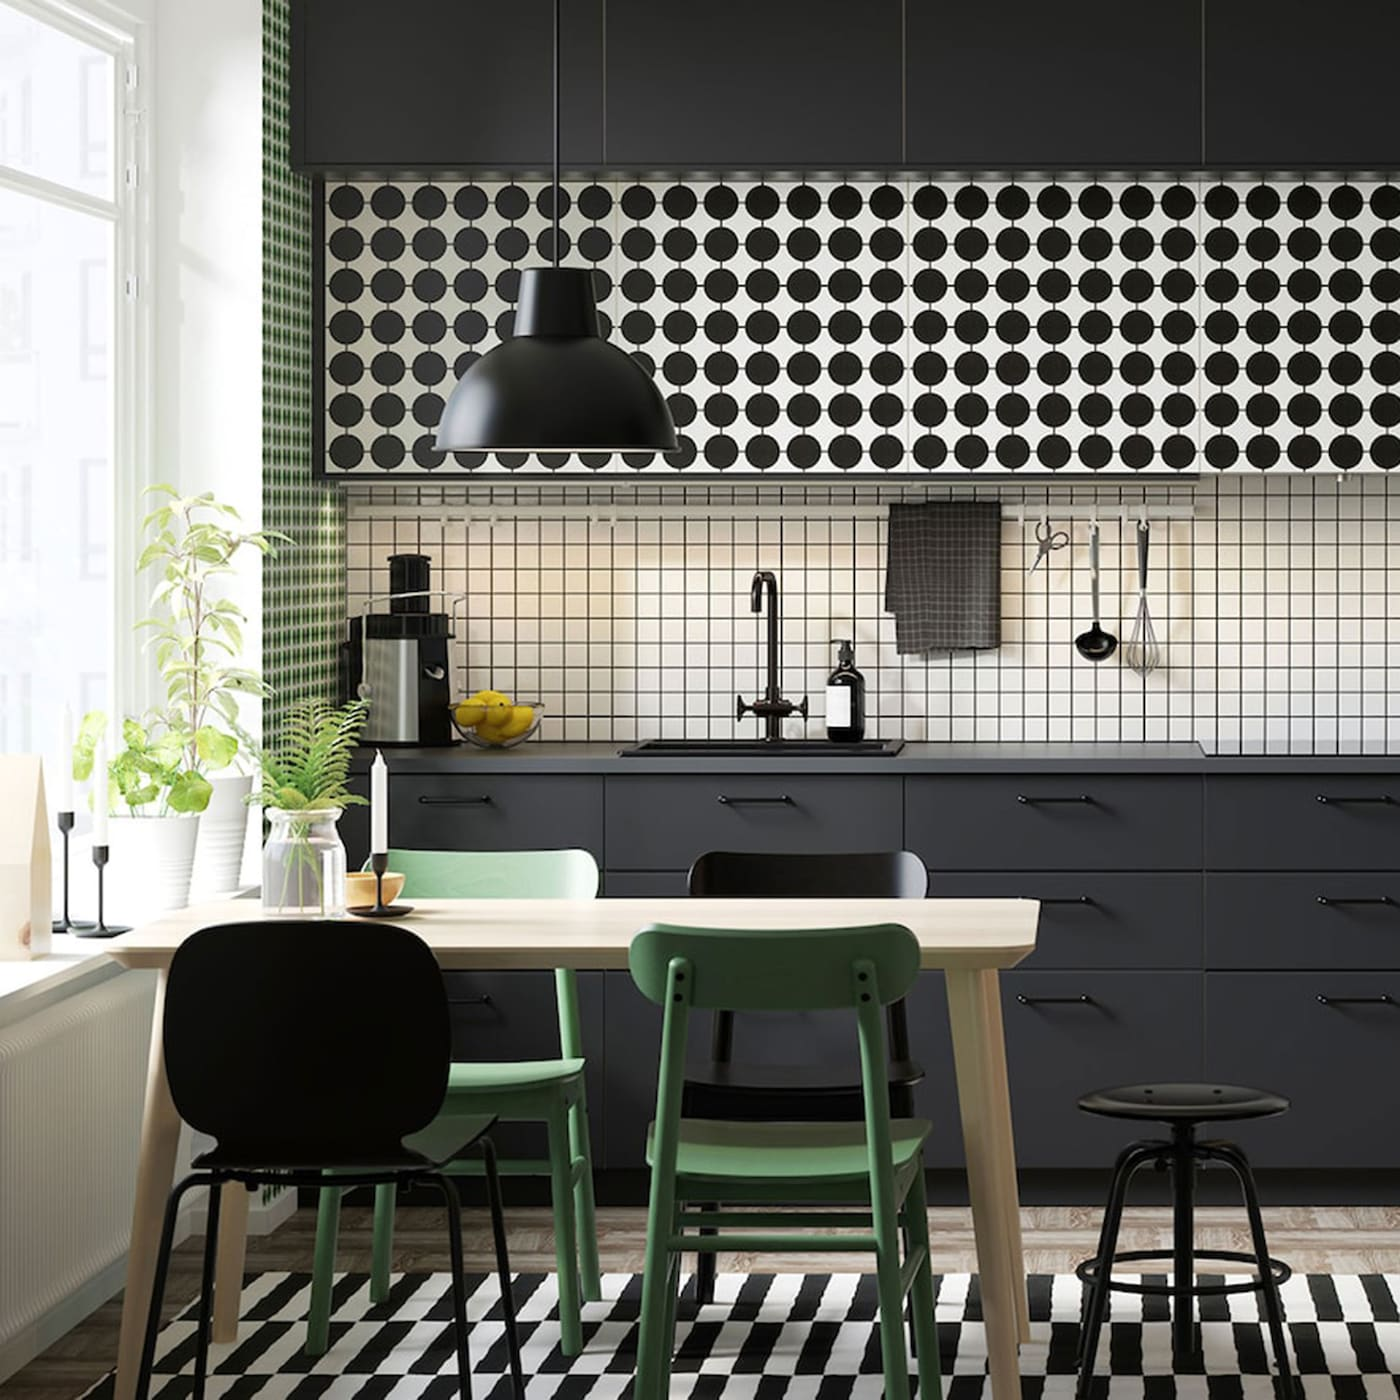 Ikea Dining Rooms: Dotted To Perfection, From The Kitchen To Dining Room